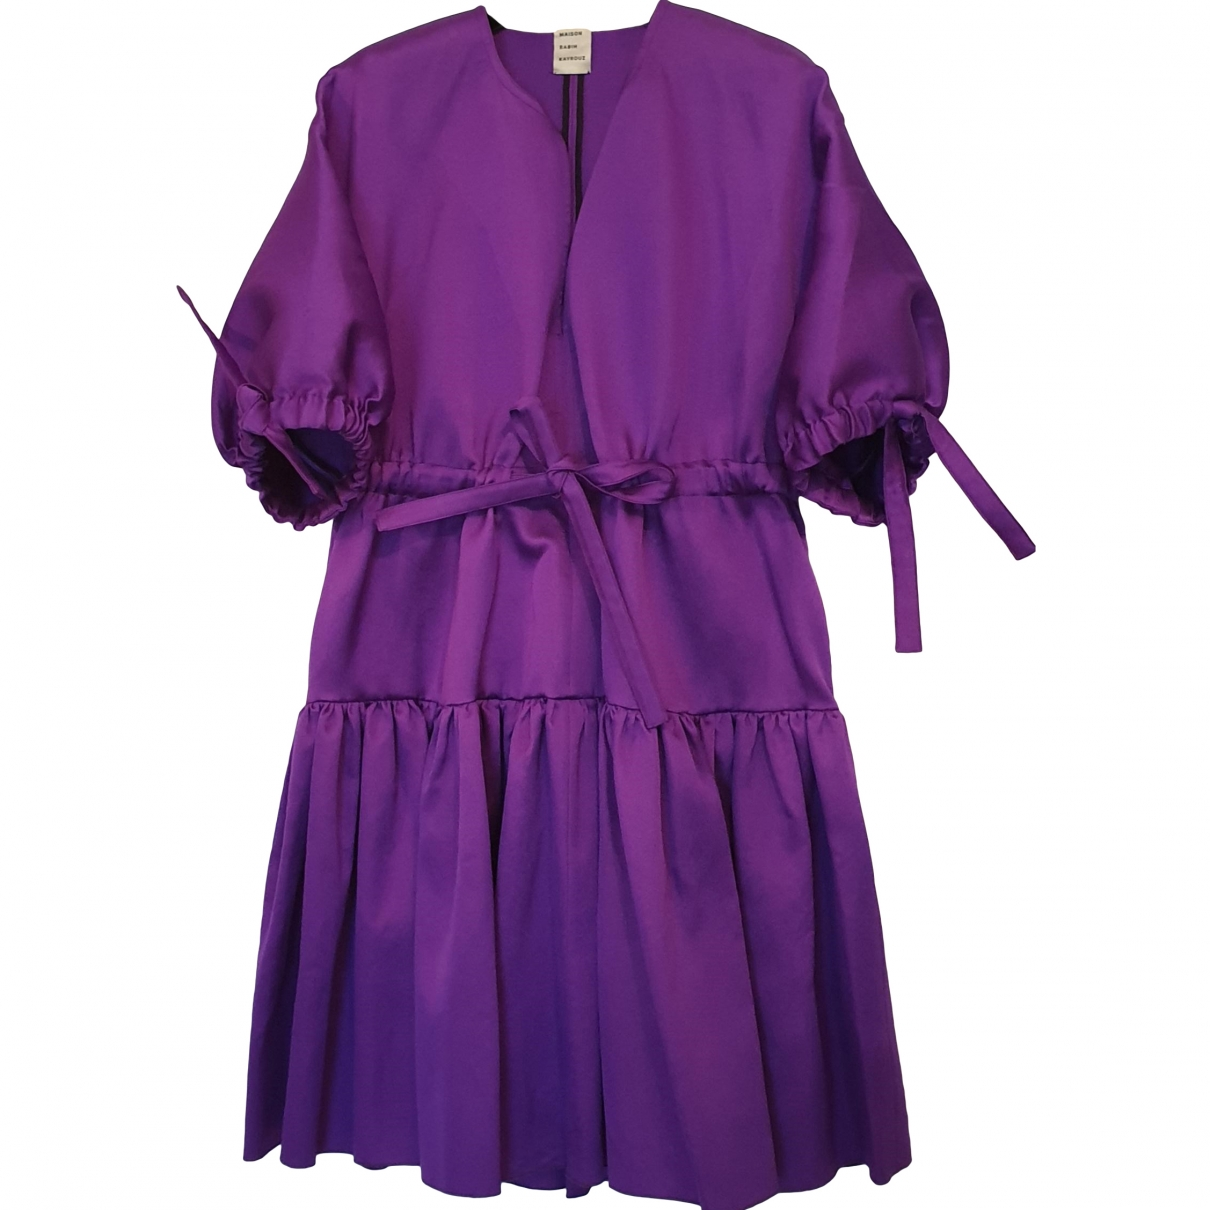 Maison Rabih Kayrouz \N Purple dress for Women 38 FR